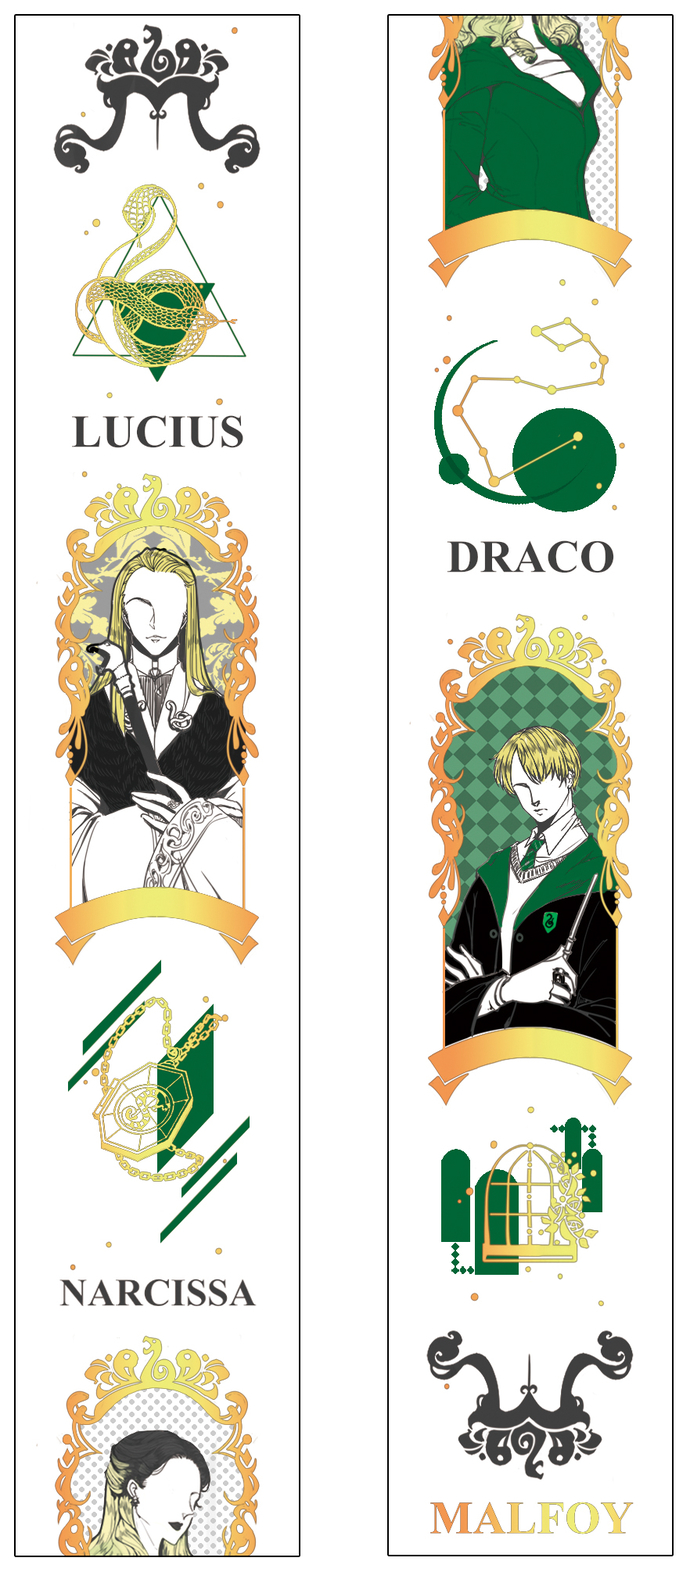 1 Roll of Limited Edition Washi Tape: Harry Potter's The Malfoy family